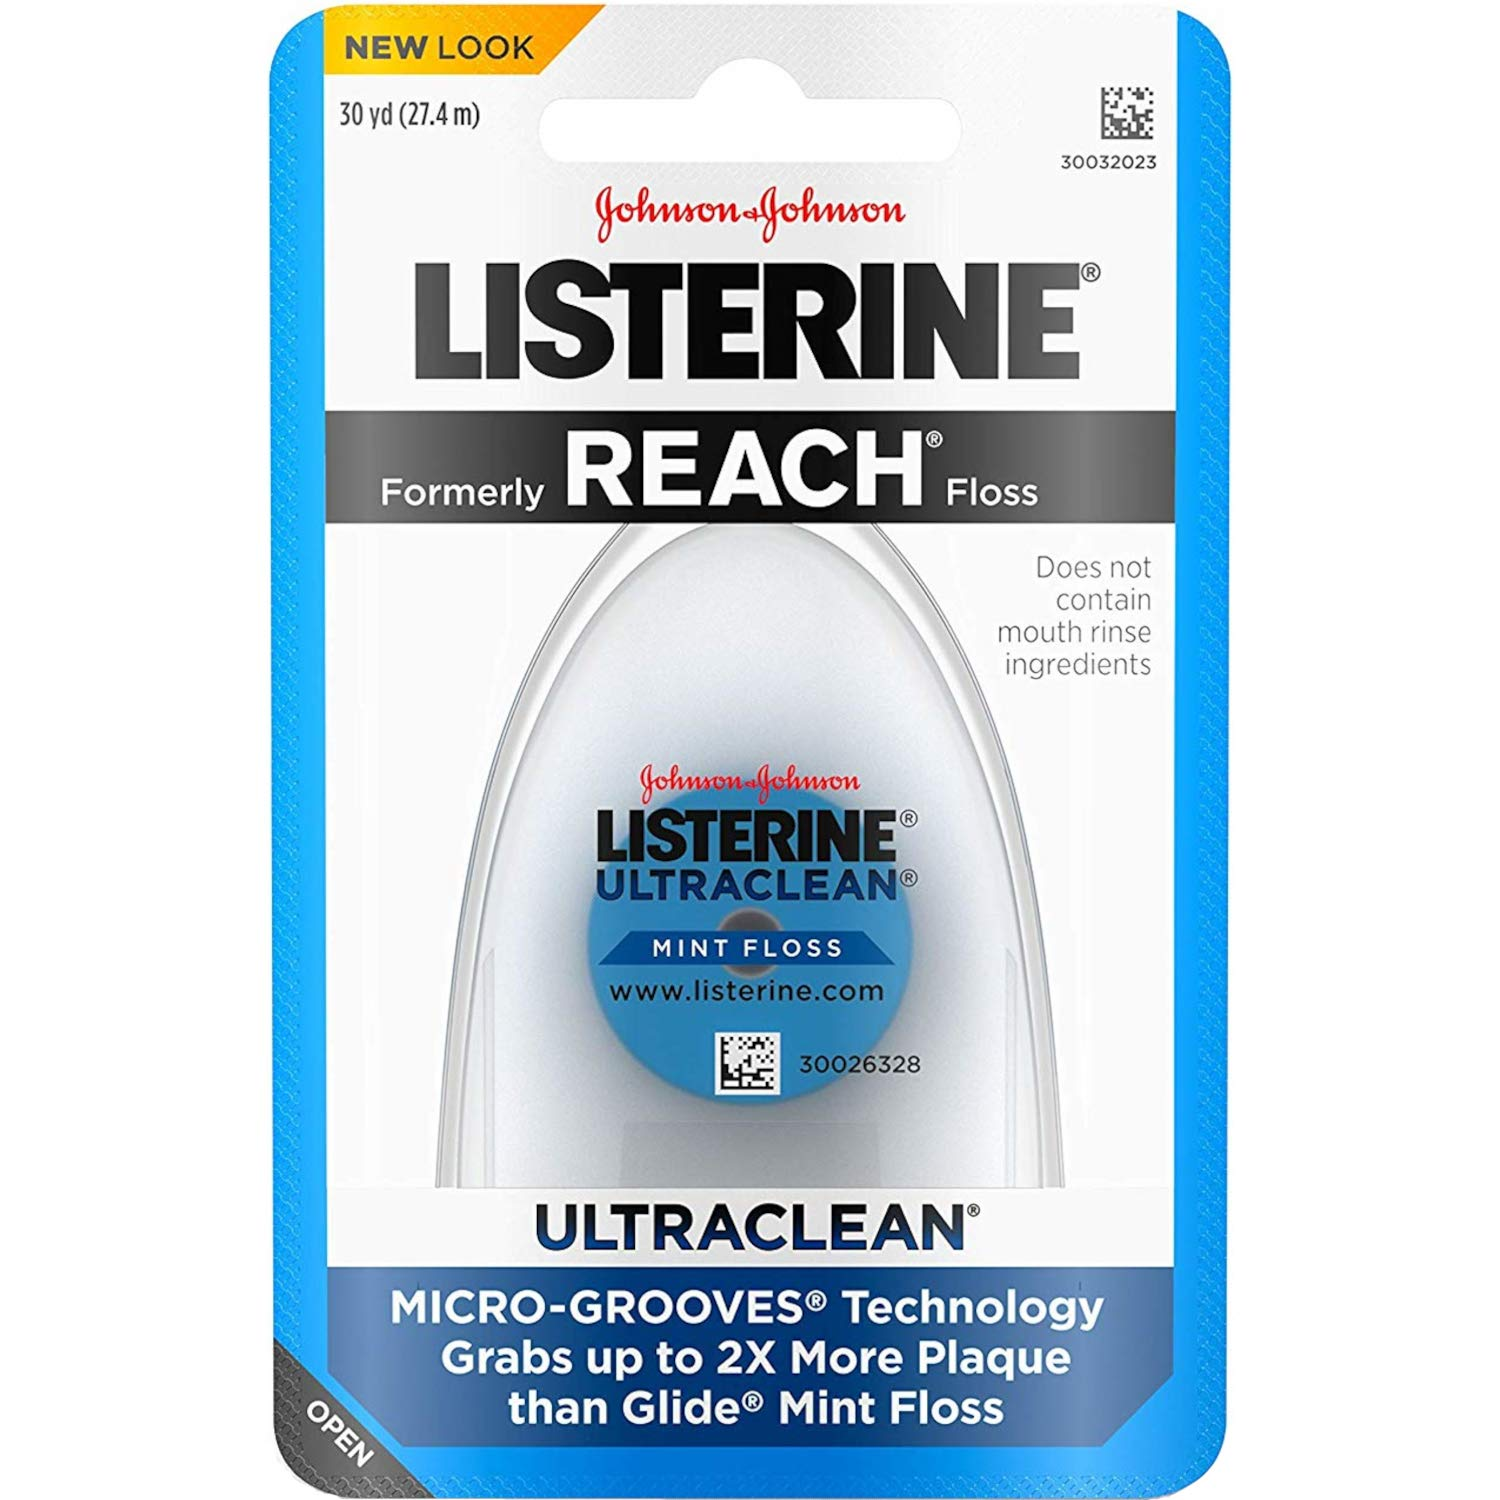 Listerine Ultraclean Floss, 30 Yards each (Value Pack of 5)